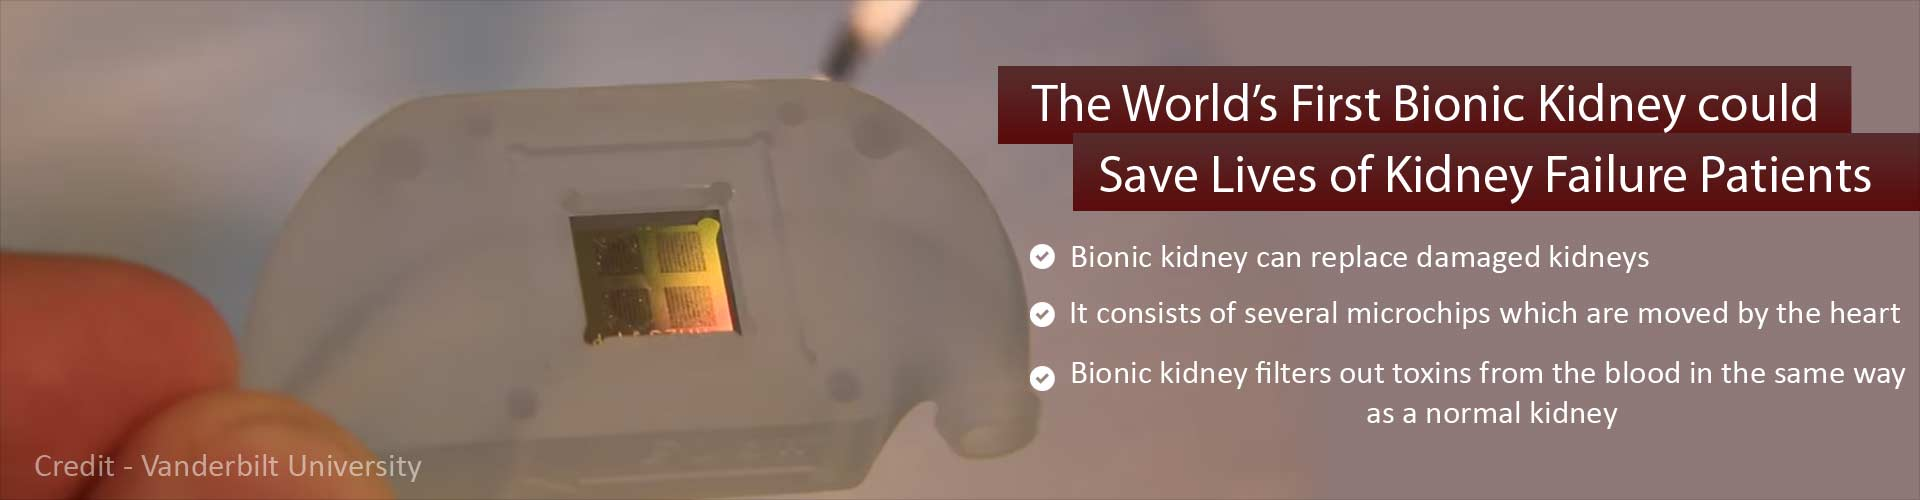 Hope for Kidney Failure Patients in Two Years With the World's First Bionic Kidney